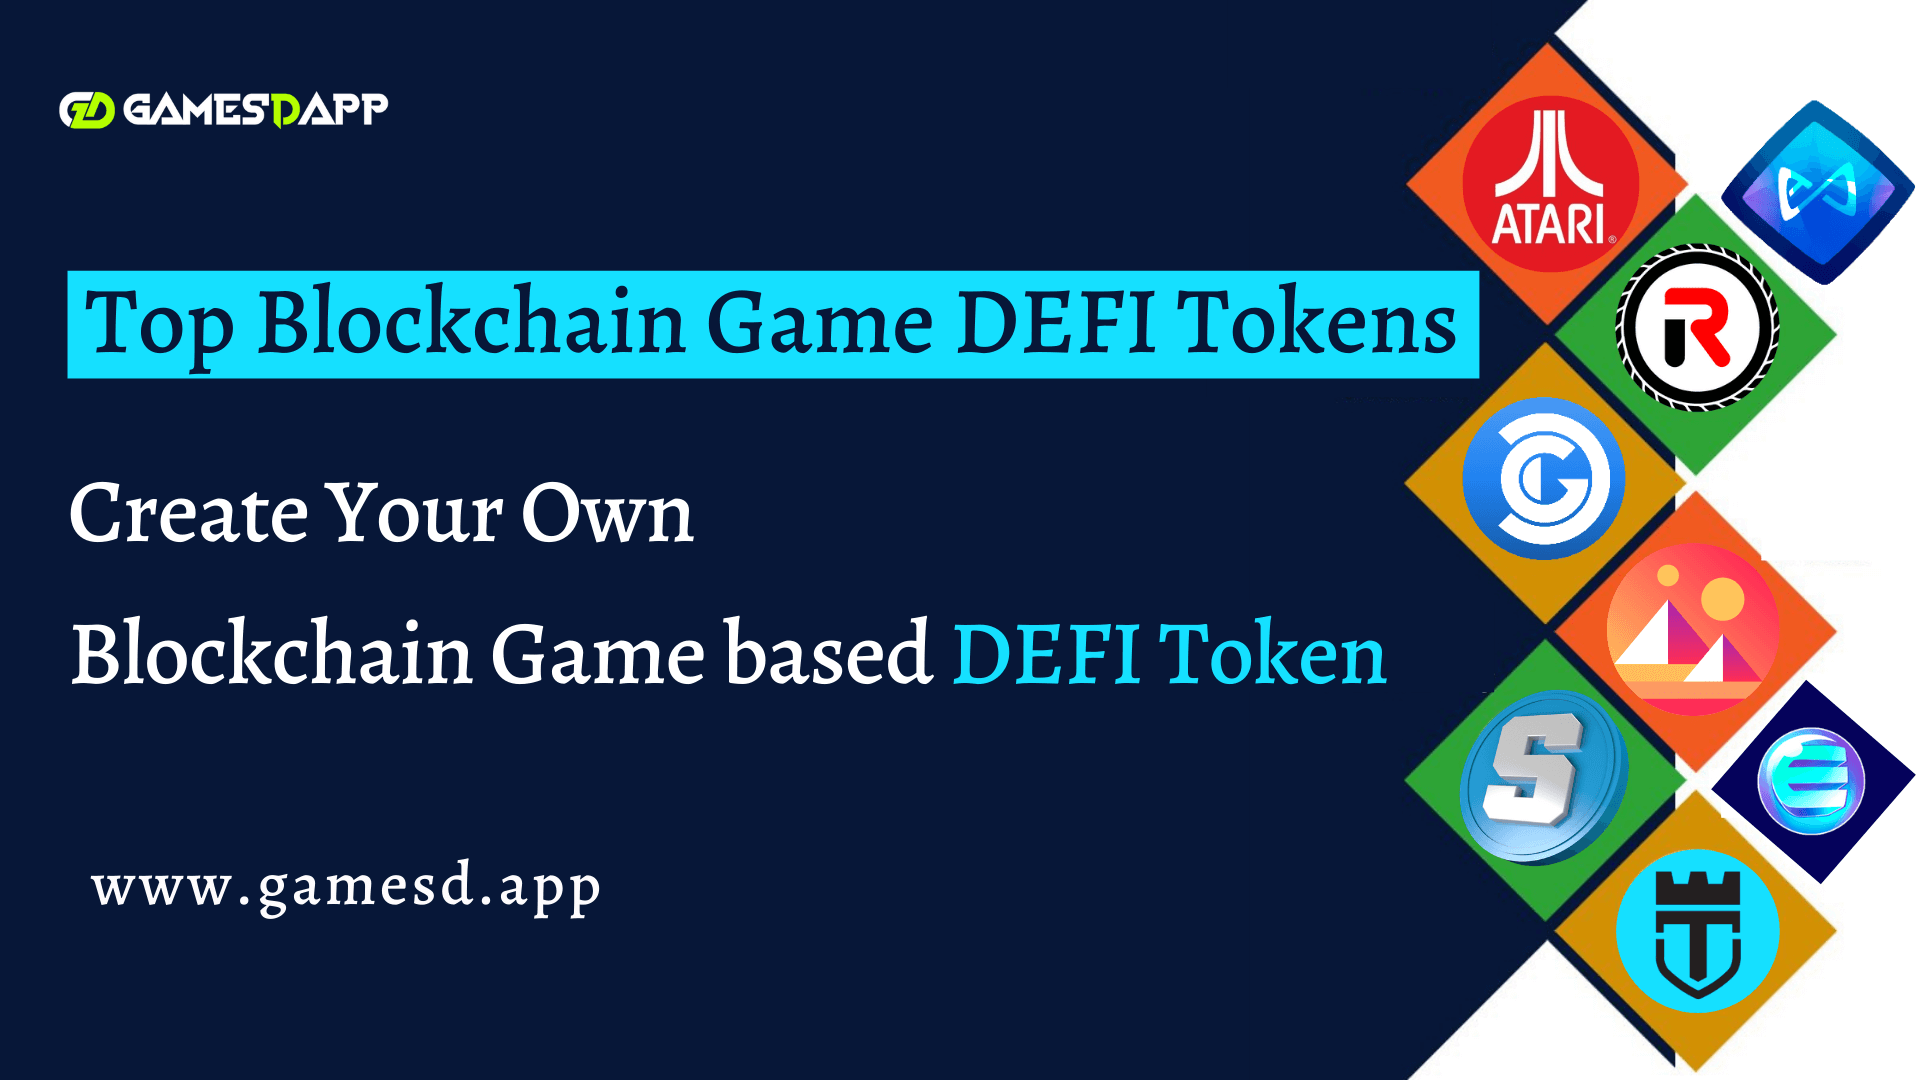 Top Blockchain Game DEFI Tokens - Create Your Own Favorite Blockchain Game based DEFI Token